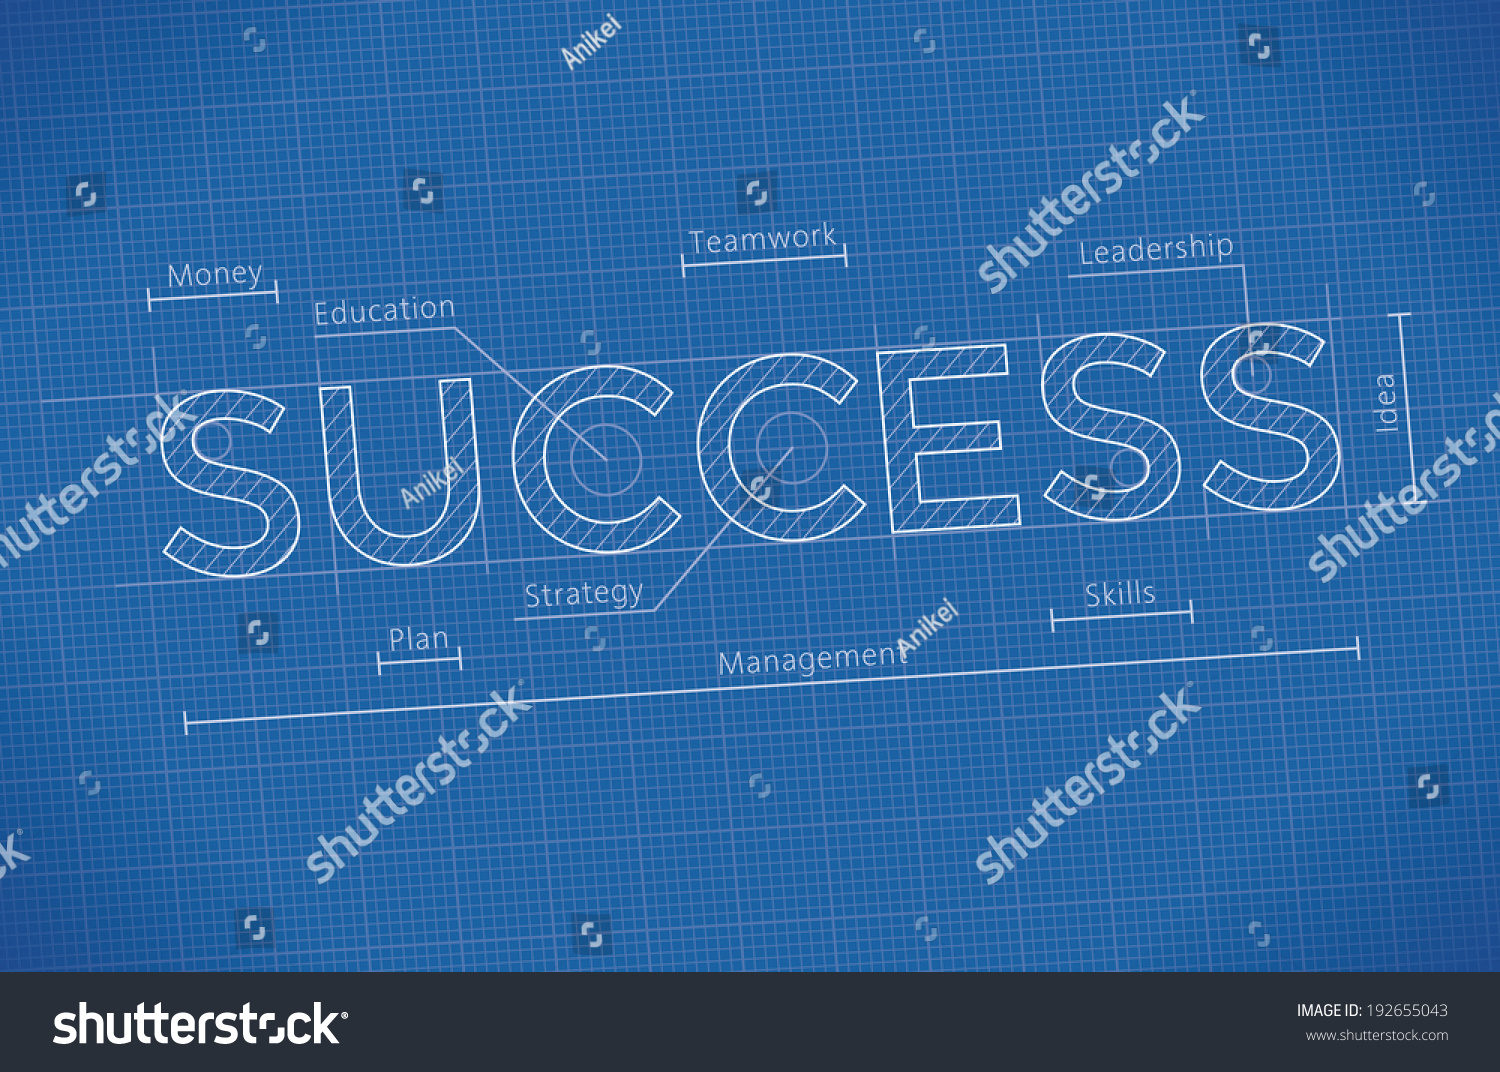 Abstract business blueprint success word idea stock vector abstract business blueprint with success word idea business success elements leadership money malvernweather